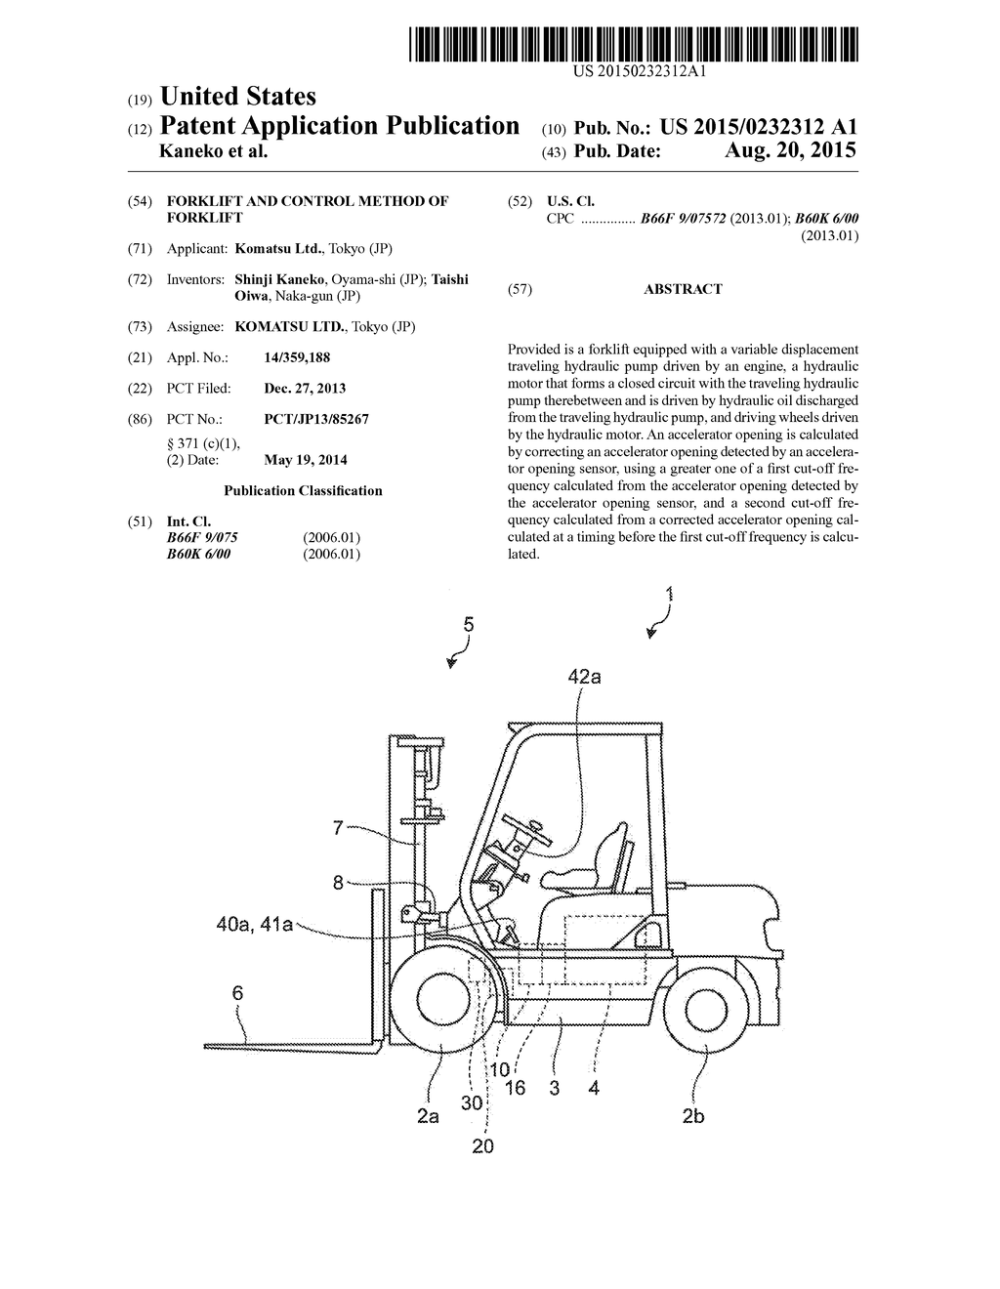 medium resolution of forklift and control method of forklift diagram schematic and image 01